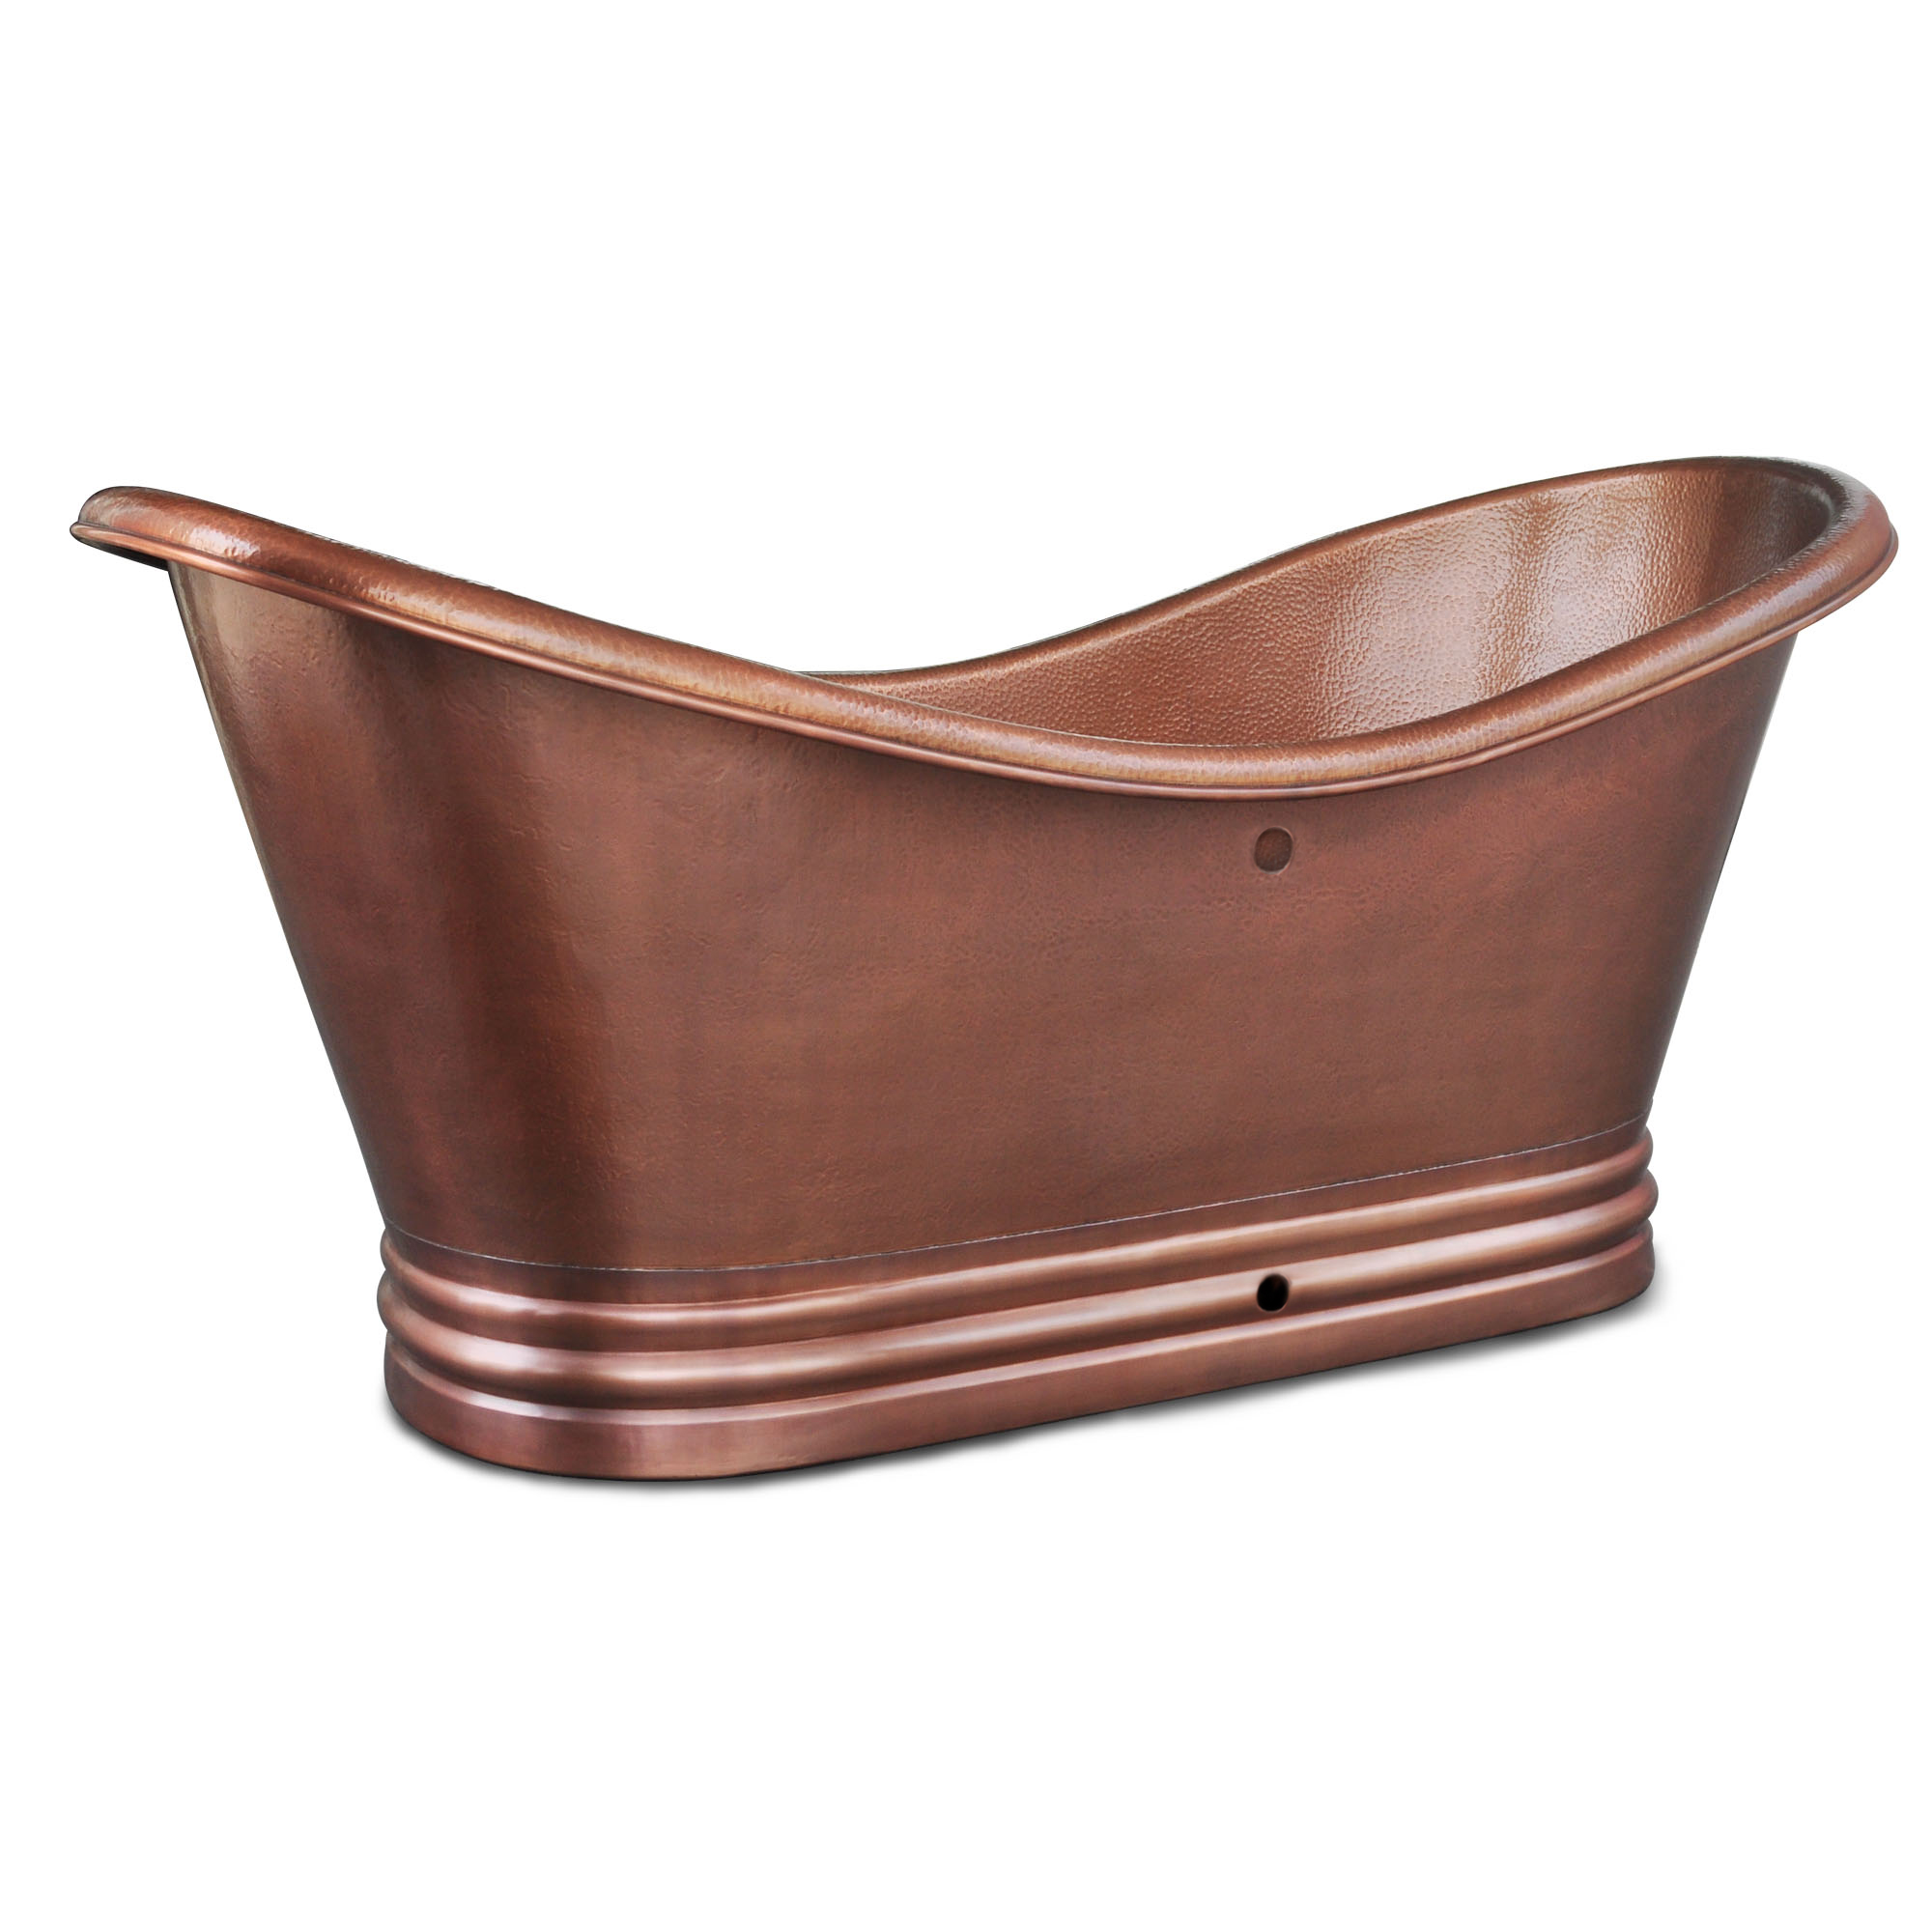 Sinkology Copper Bathtubs & Soaking Tubs